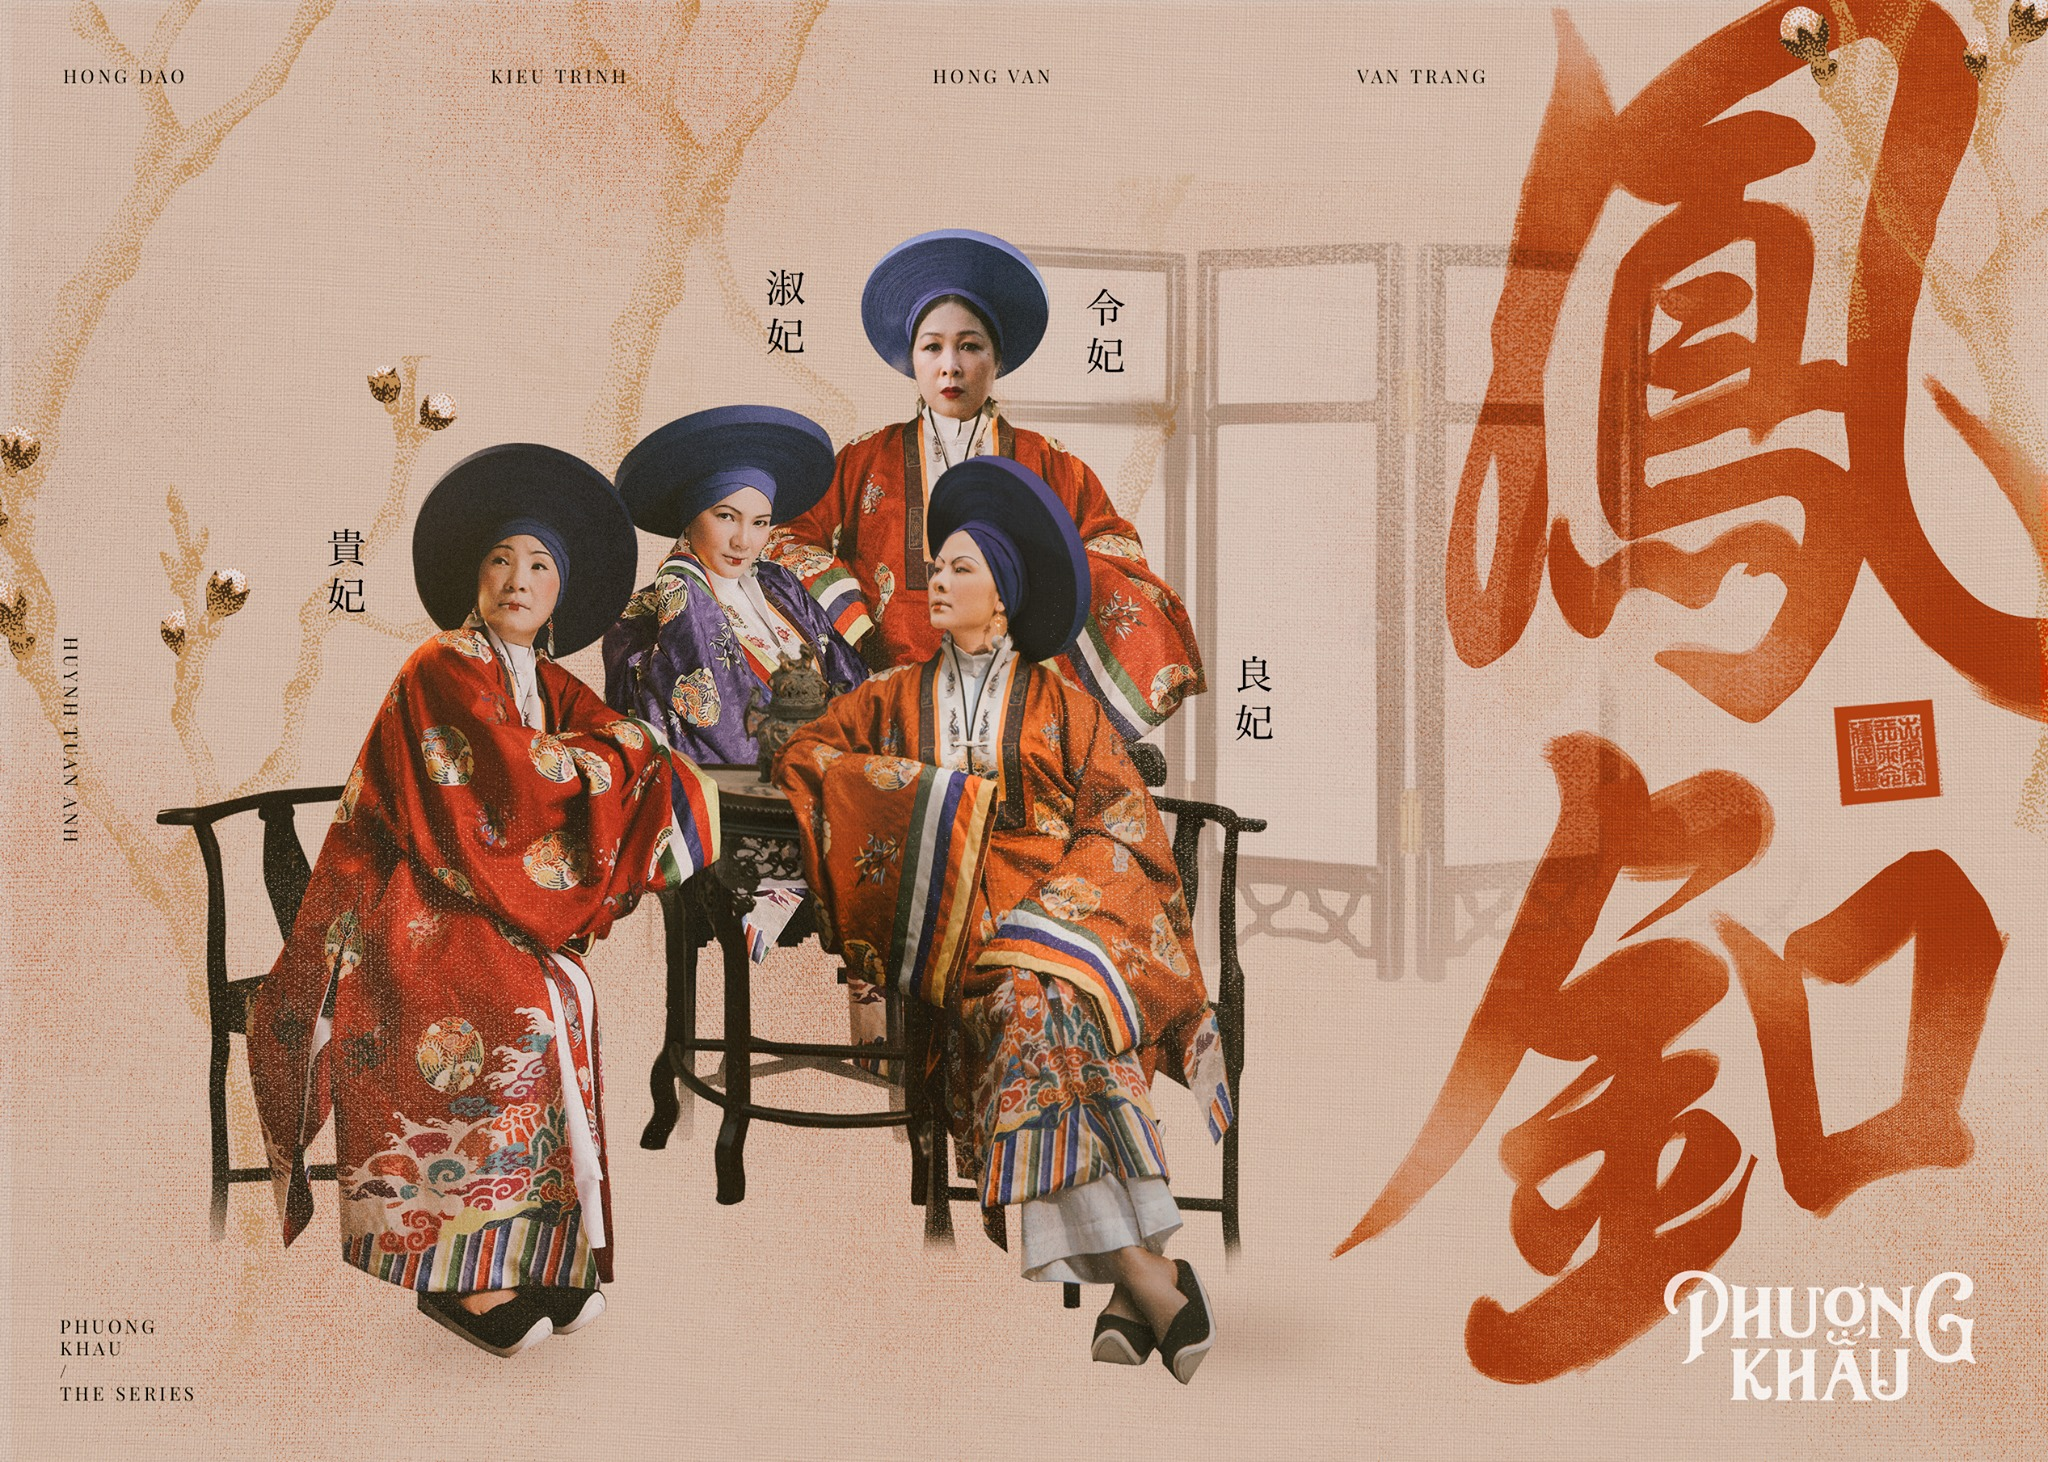 Vietnam's first palace drama to air on YouTube in 2020